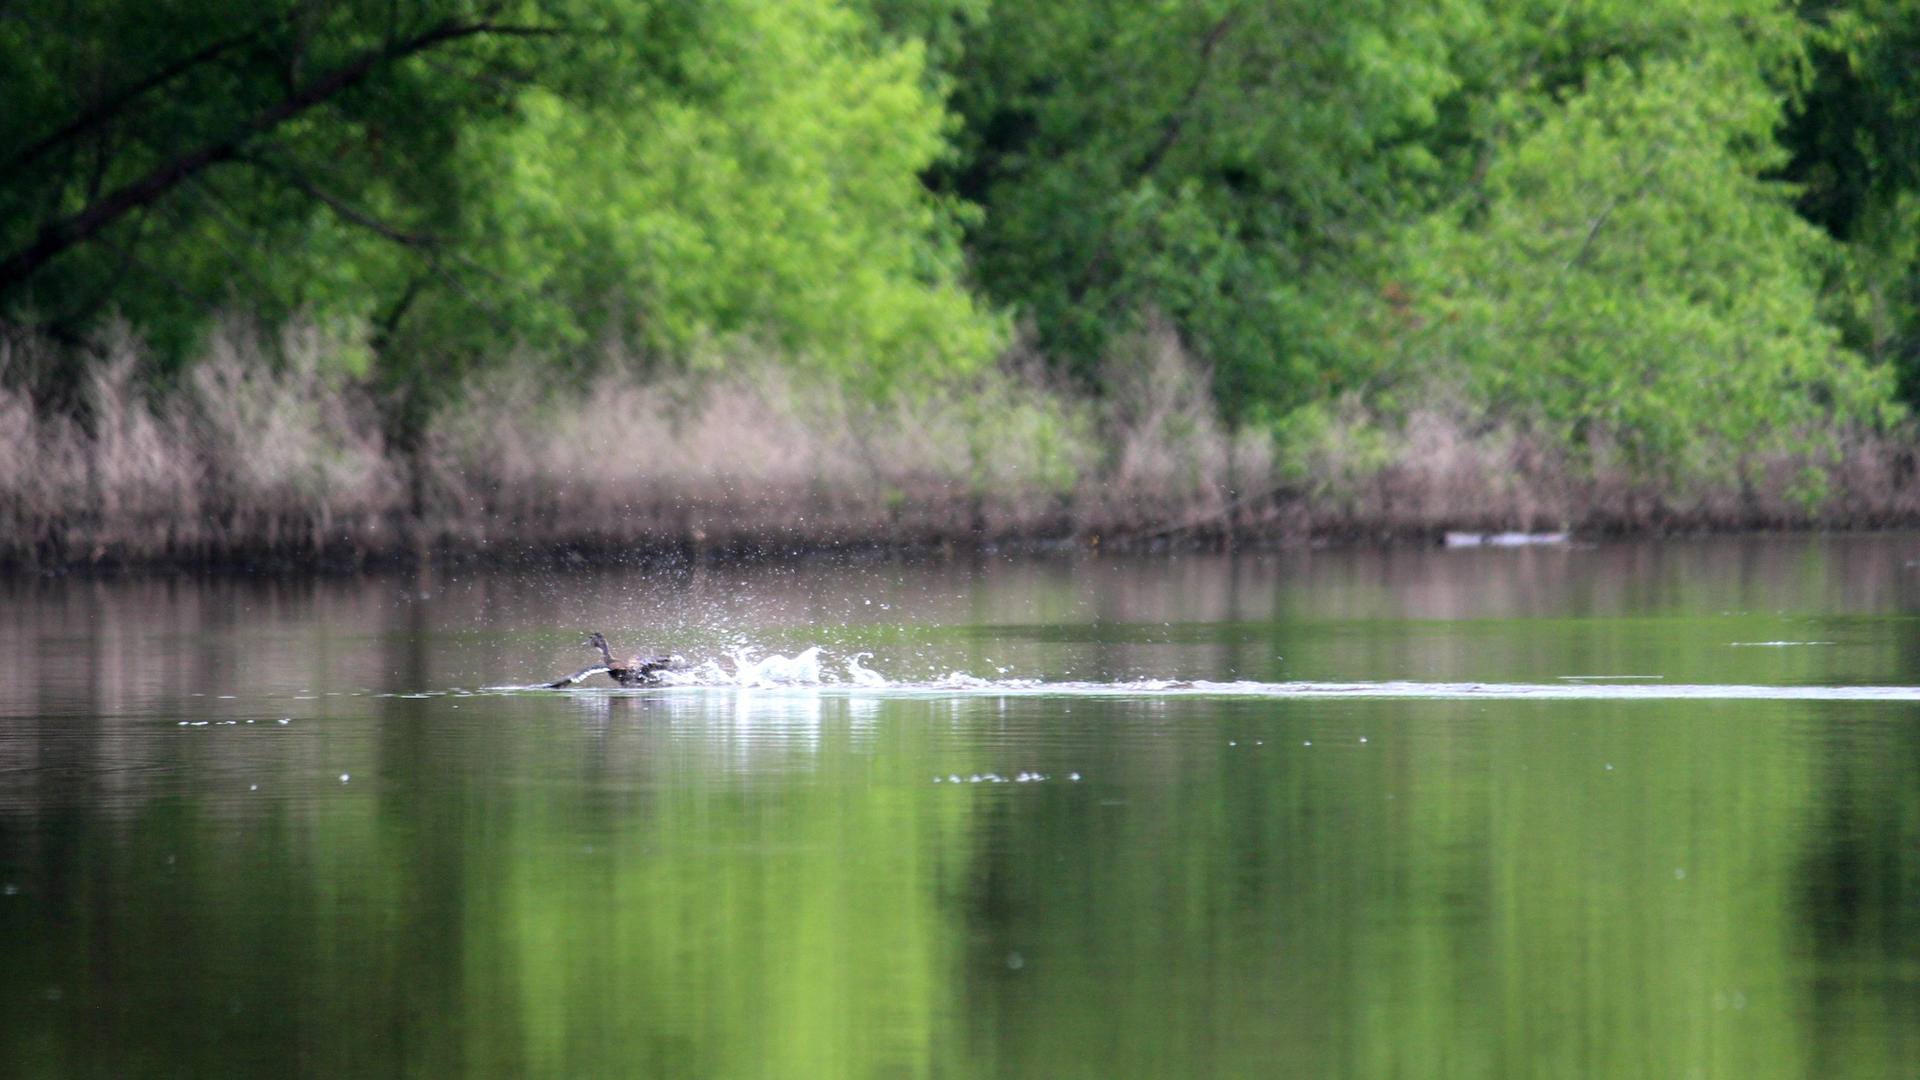 June 12, 2018 - Scouting Tour of Smith's Mill Section Photos by: Mill Pond Kayak